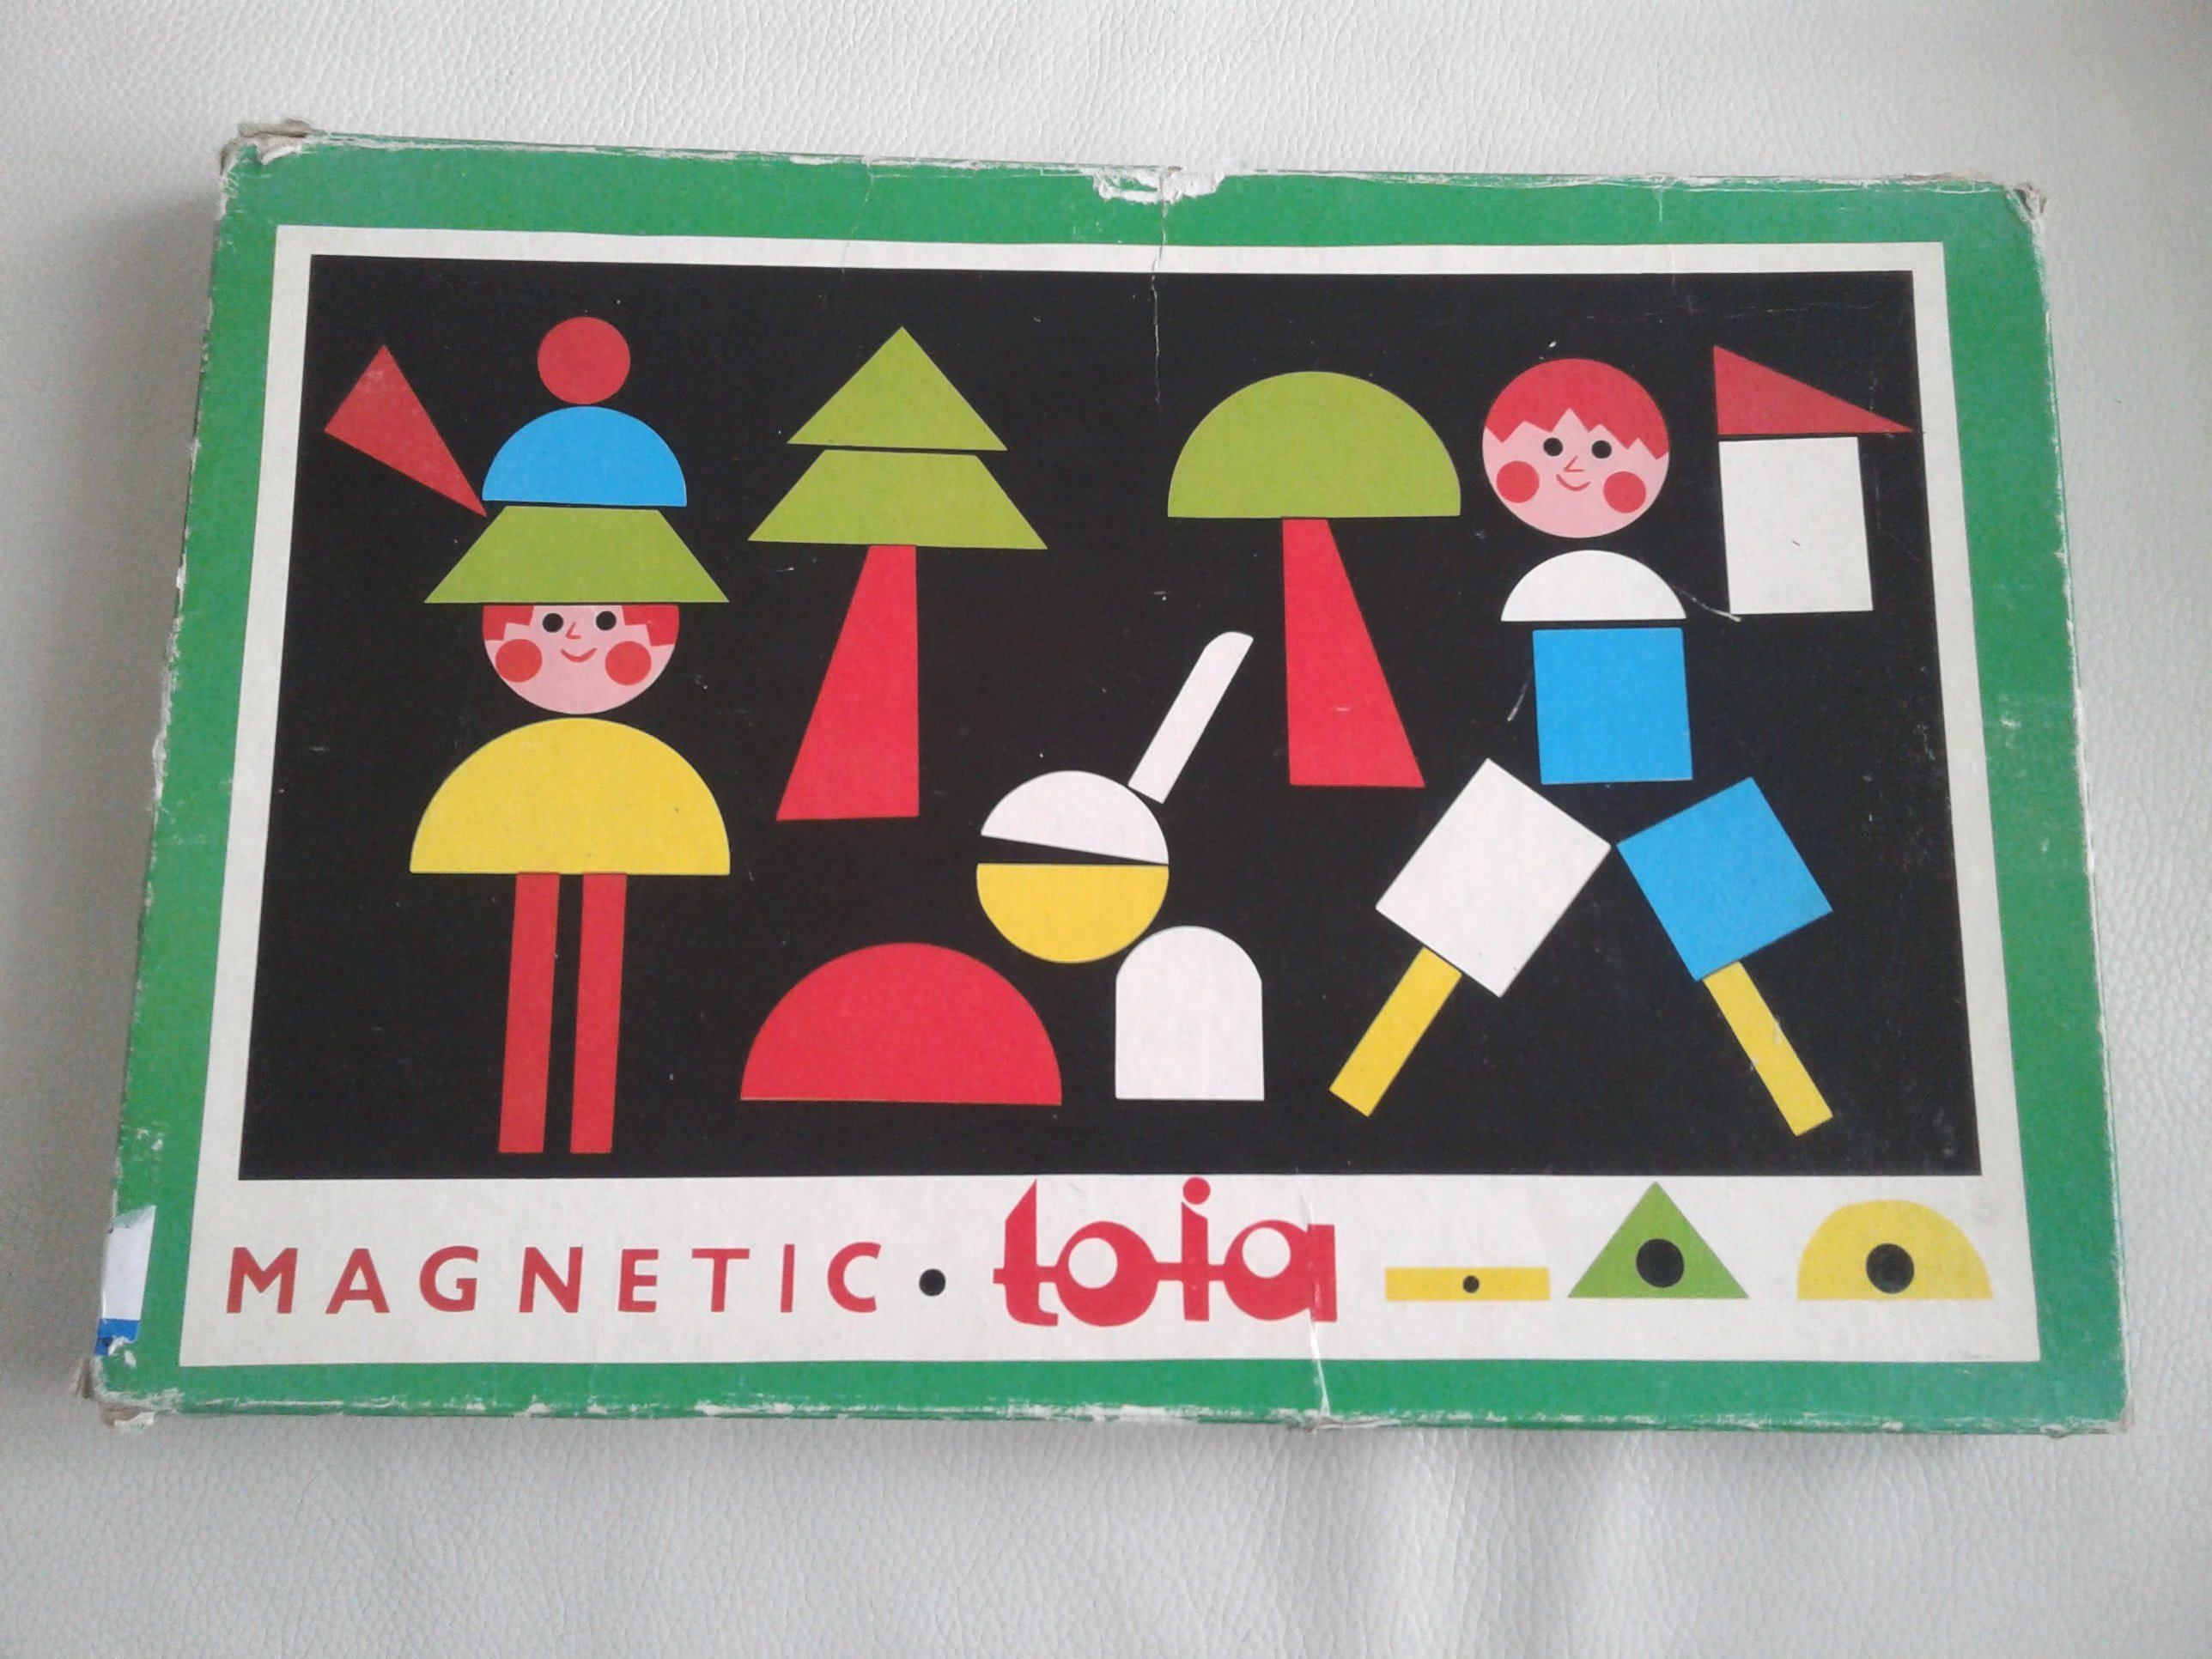 Vintage 1960 Magnetic Toia Children Game Tofa Playset Wood Etsy Games For Kids Shape Pictures Playset